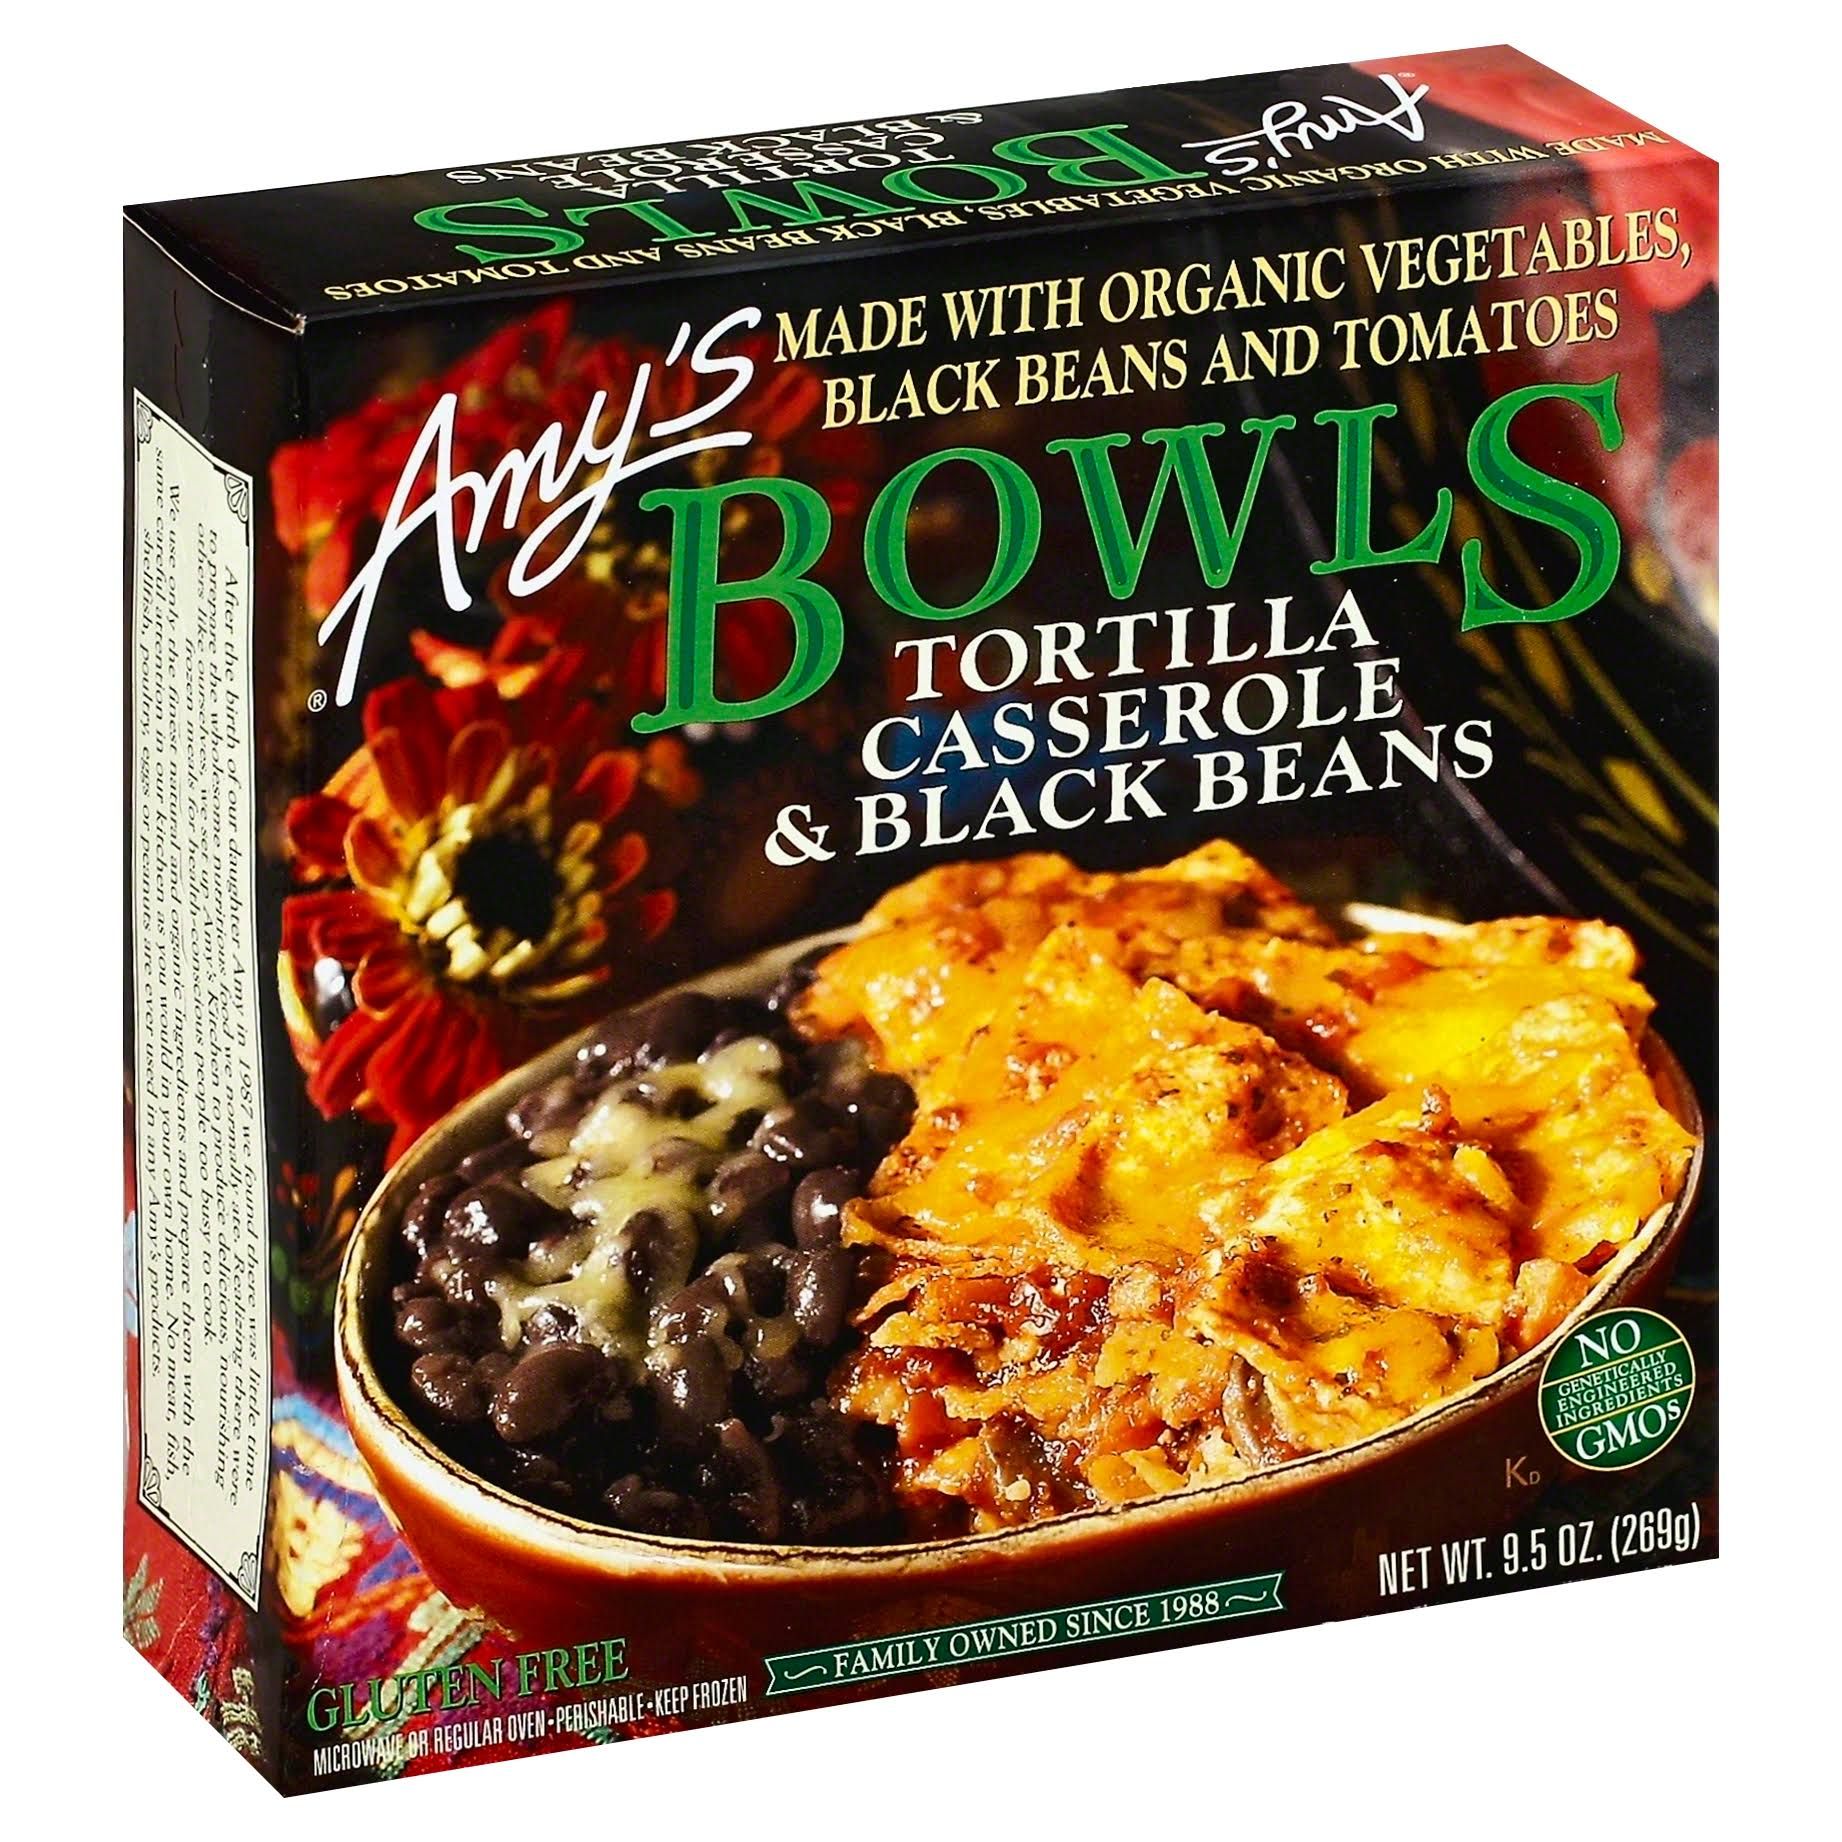 Amy's Bowls - Tortilla Casserole and Black Beans, 9.5oz